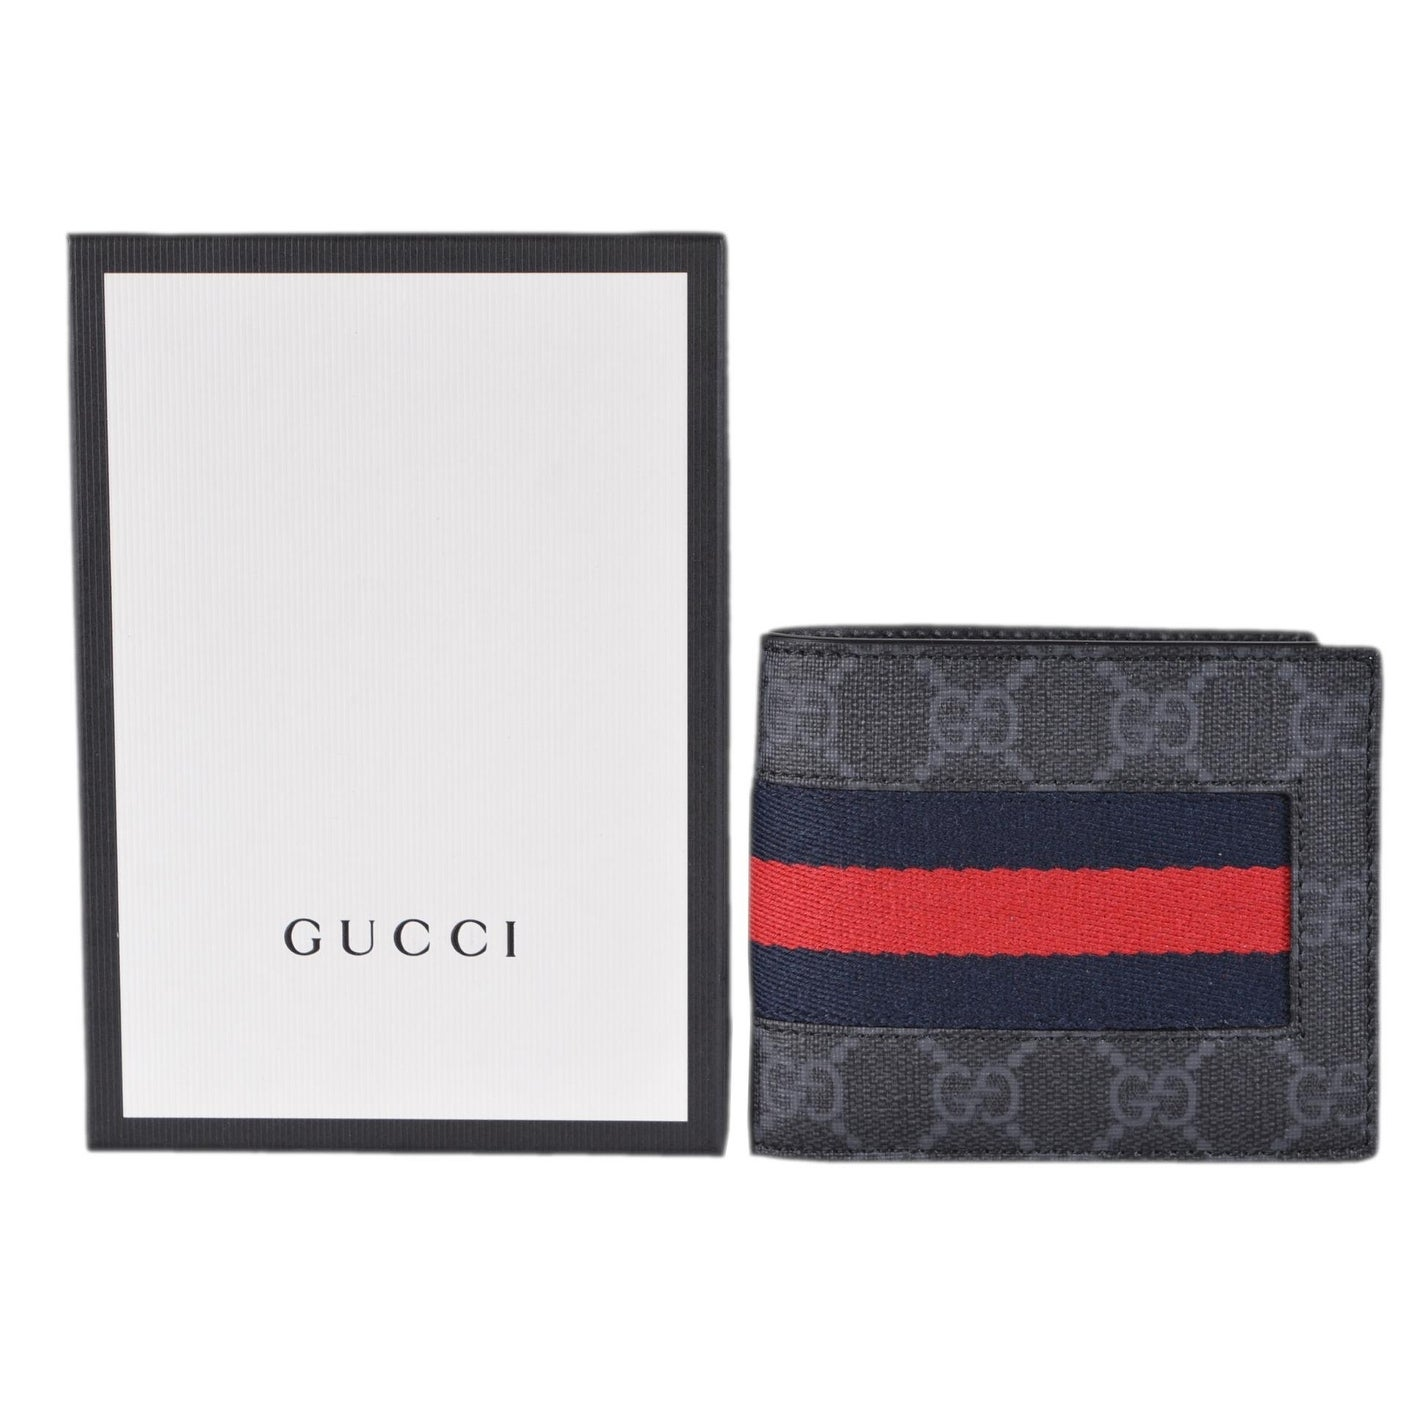 4158478aac6d12 Shop Gucci Men's Black Grey GG Supreme Canvas Blue Red Web Bifold Wallet -  4.5 x 3.5 - Free Shipping Today - Overstock - 25435914